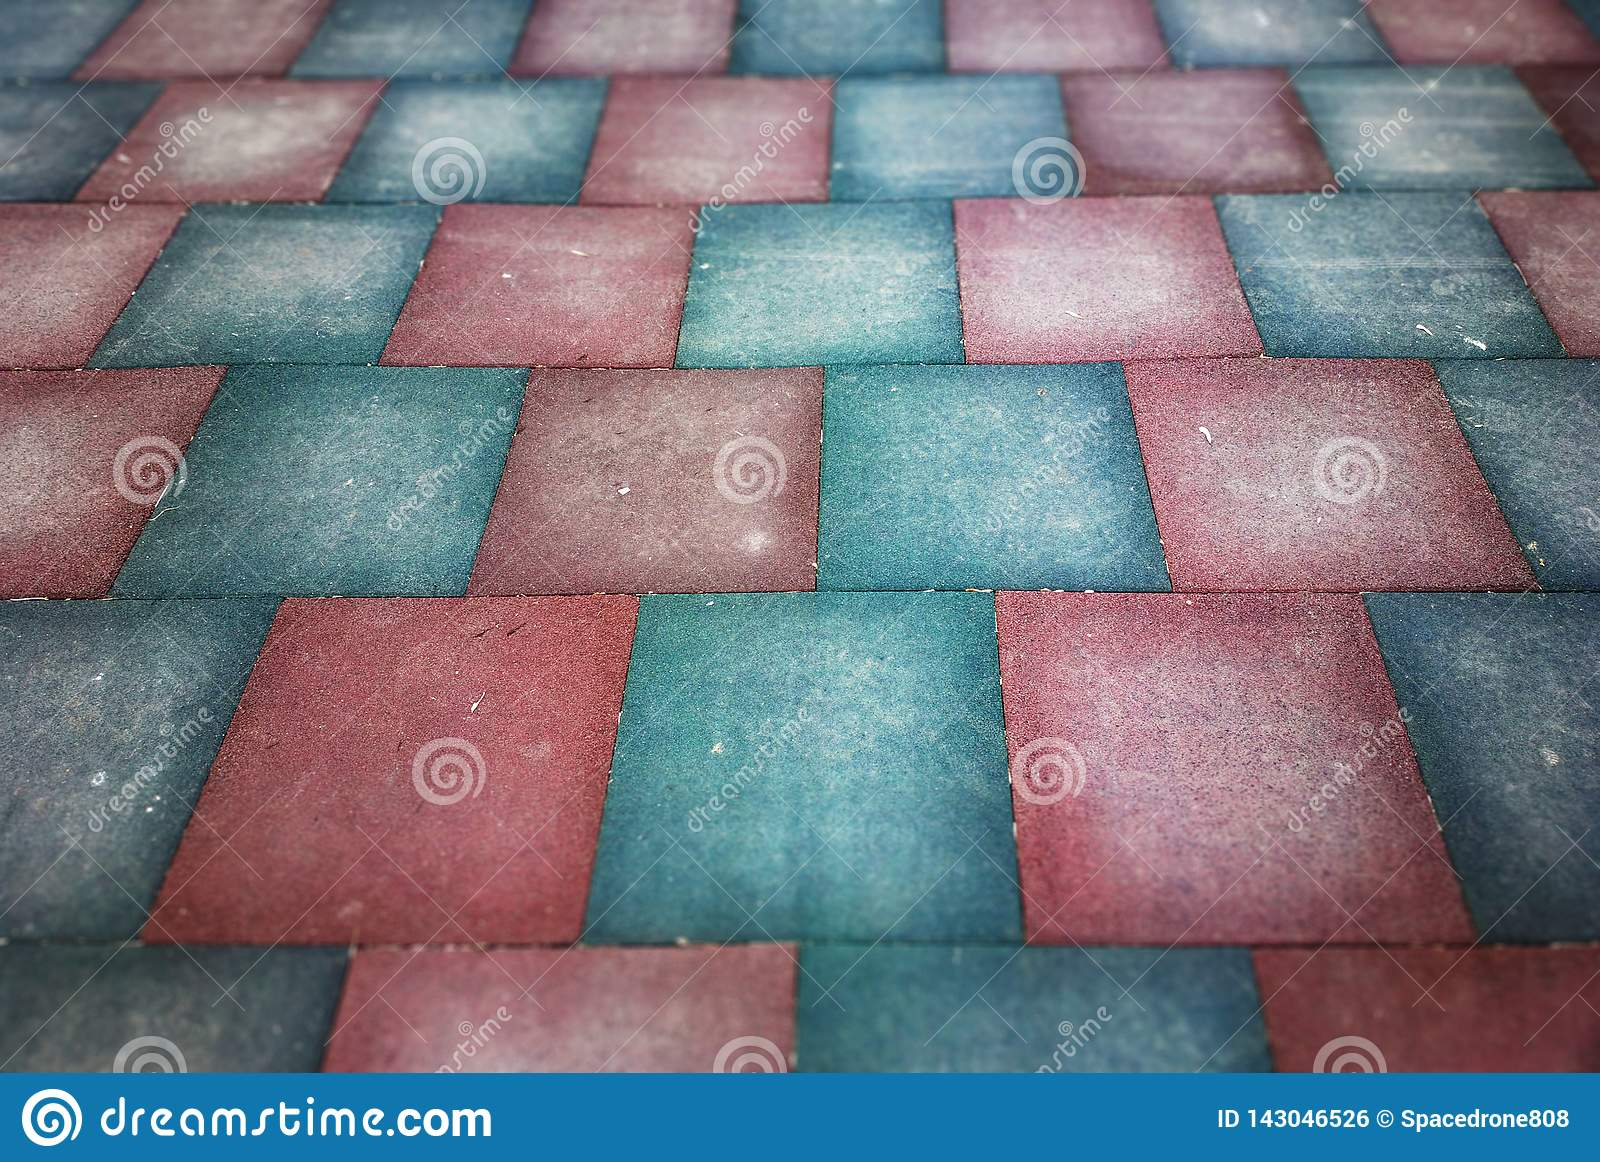 Blocks And Tiles On Street Floor Texture Background Hd Stock